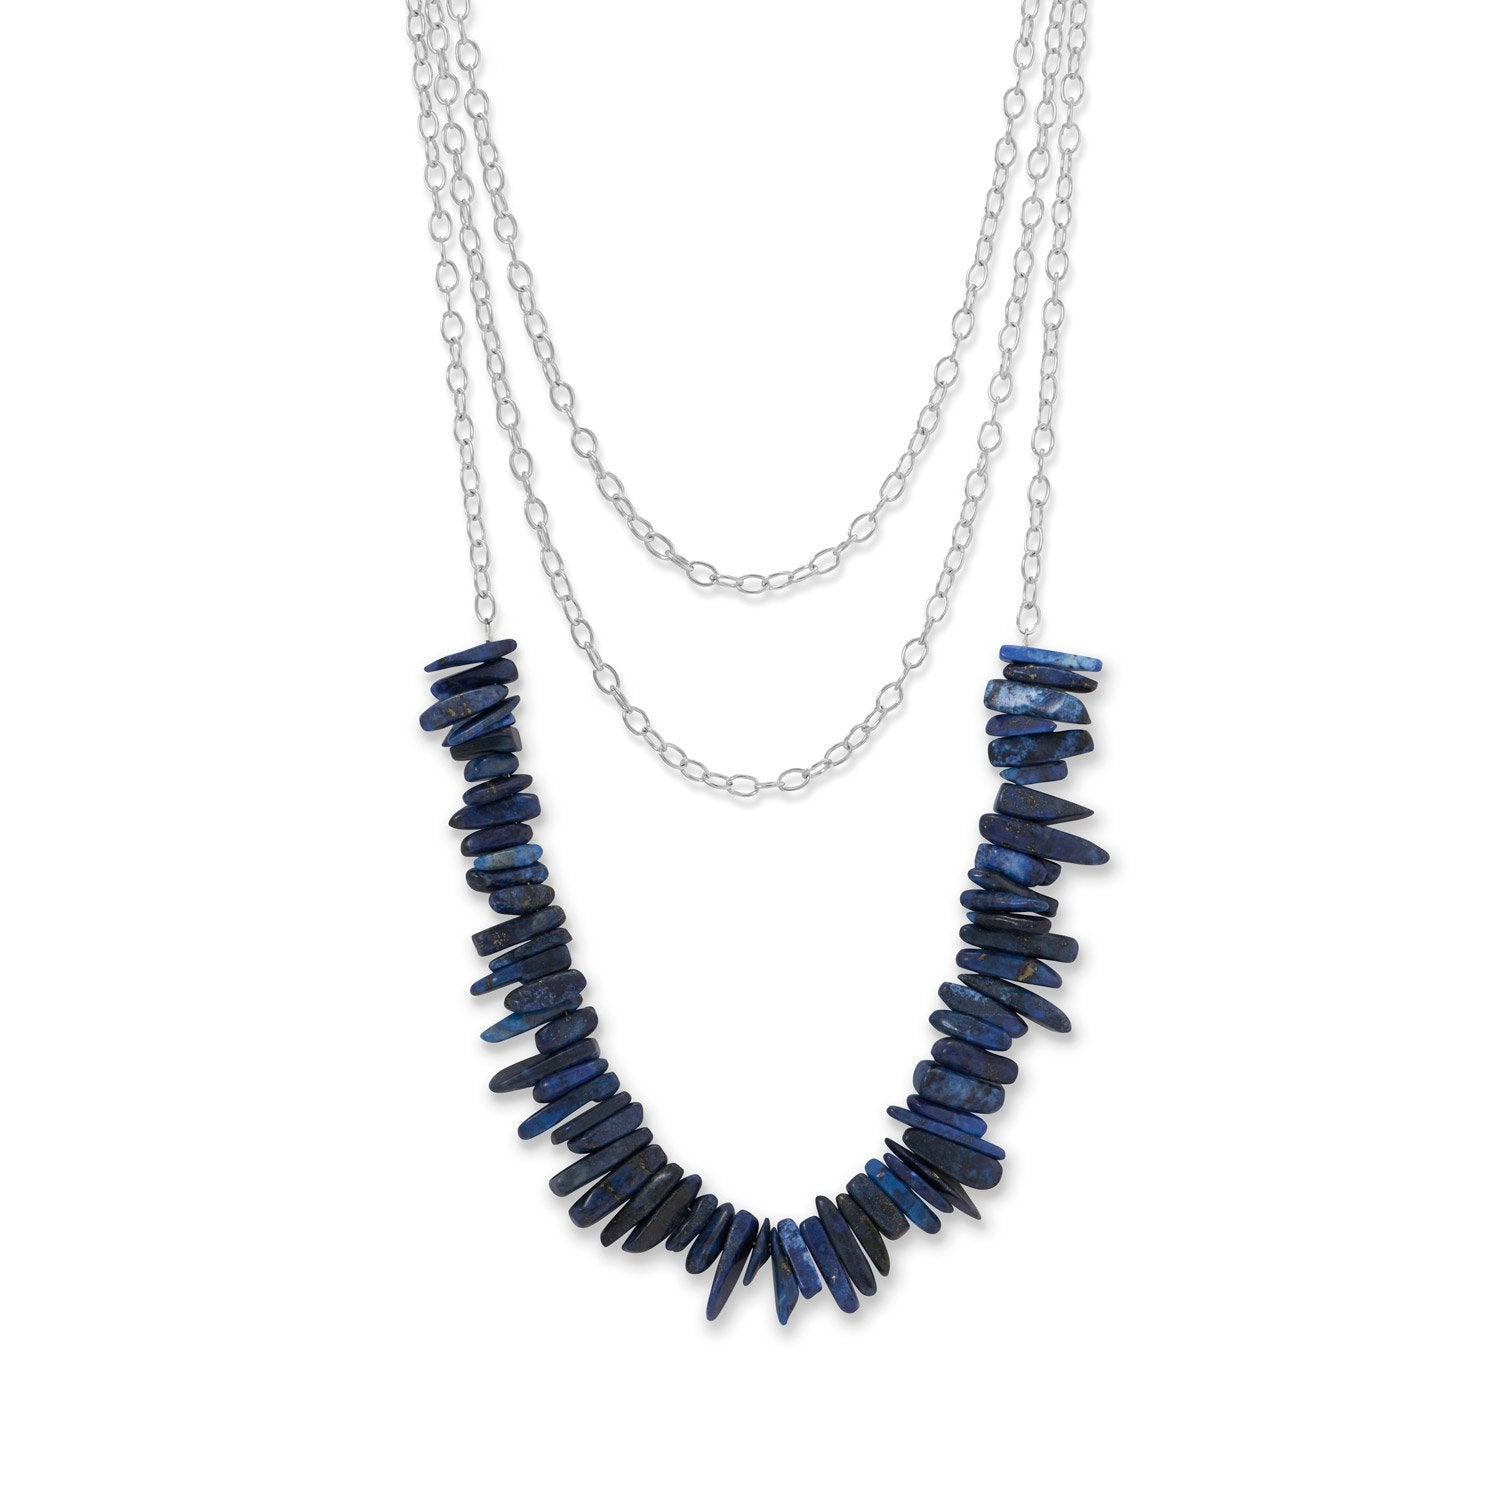 3 Strand Silver Tone Lapis Spike Necklace